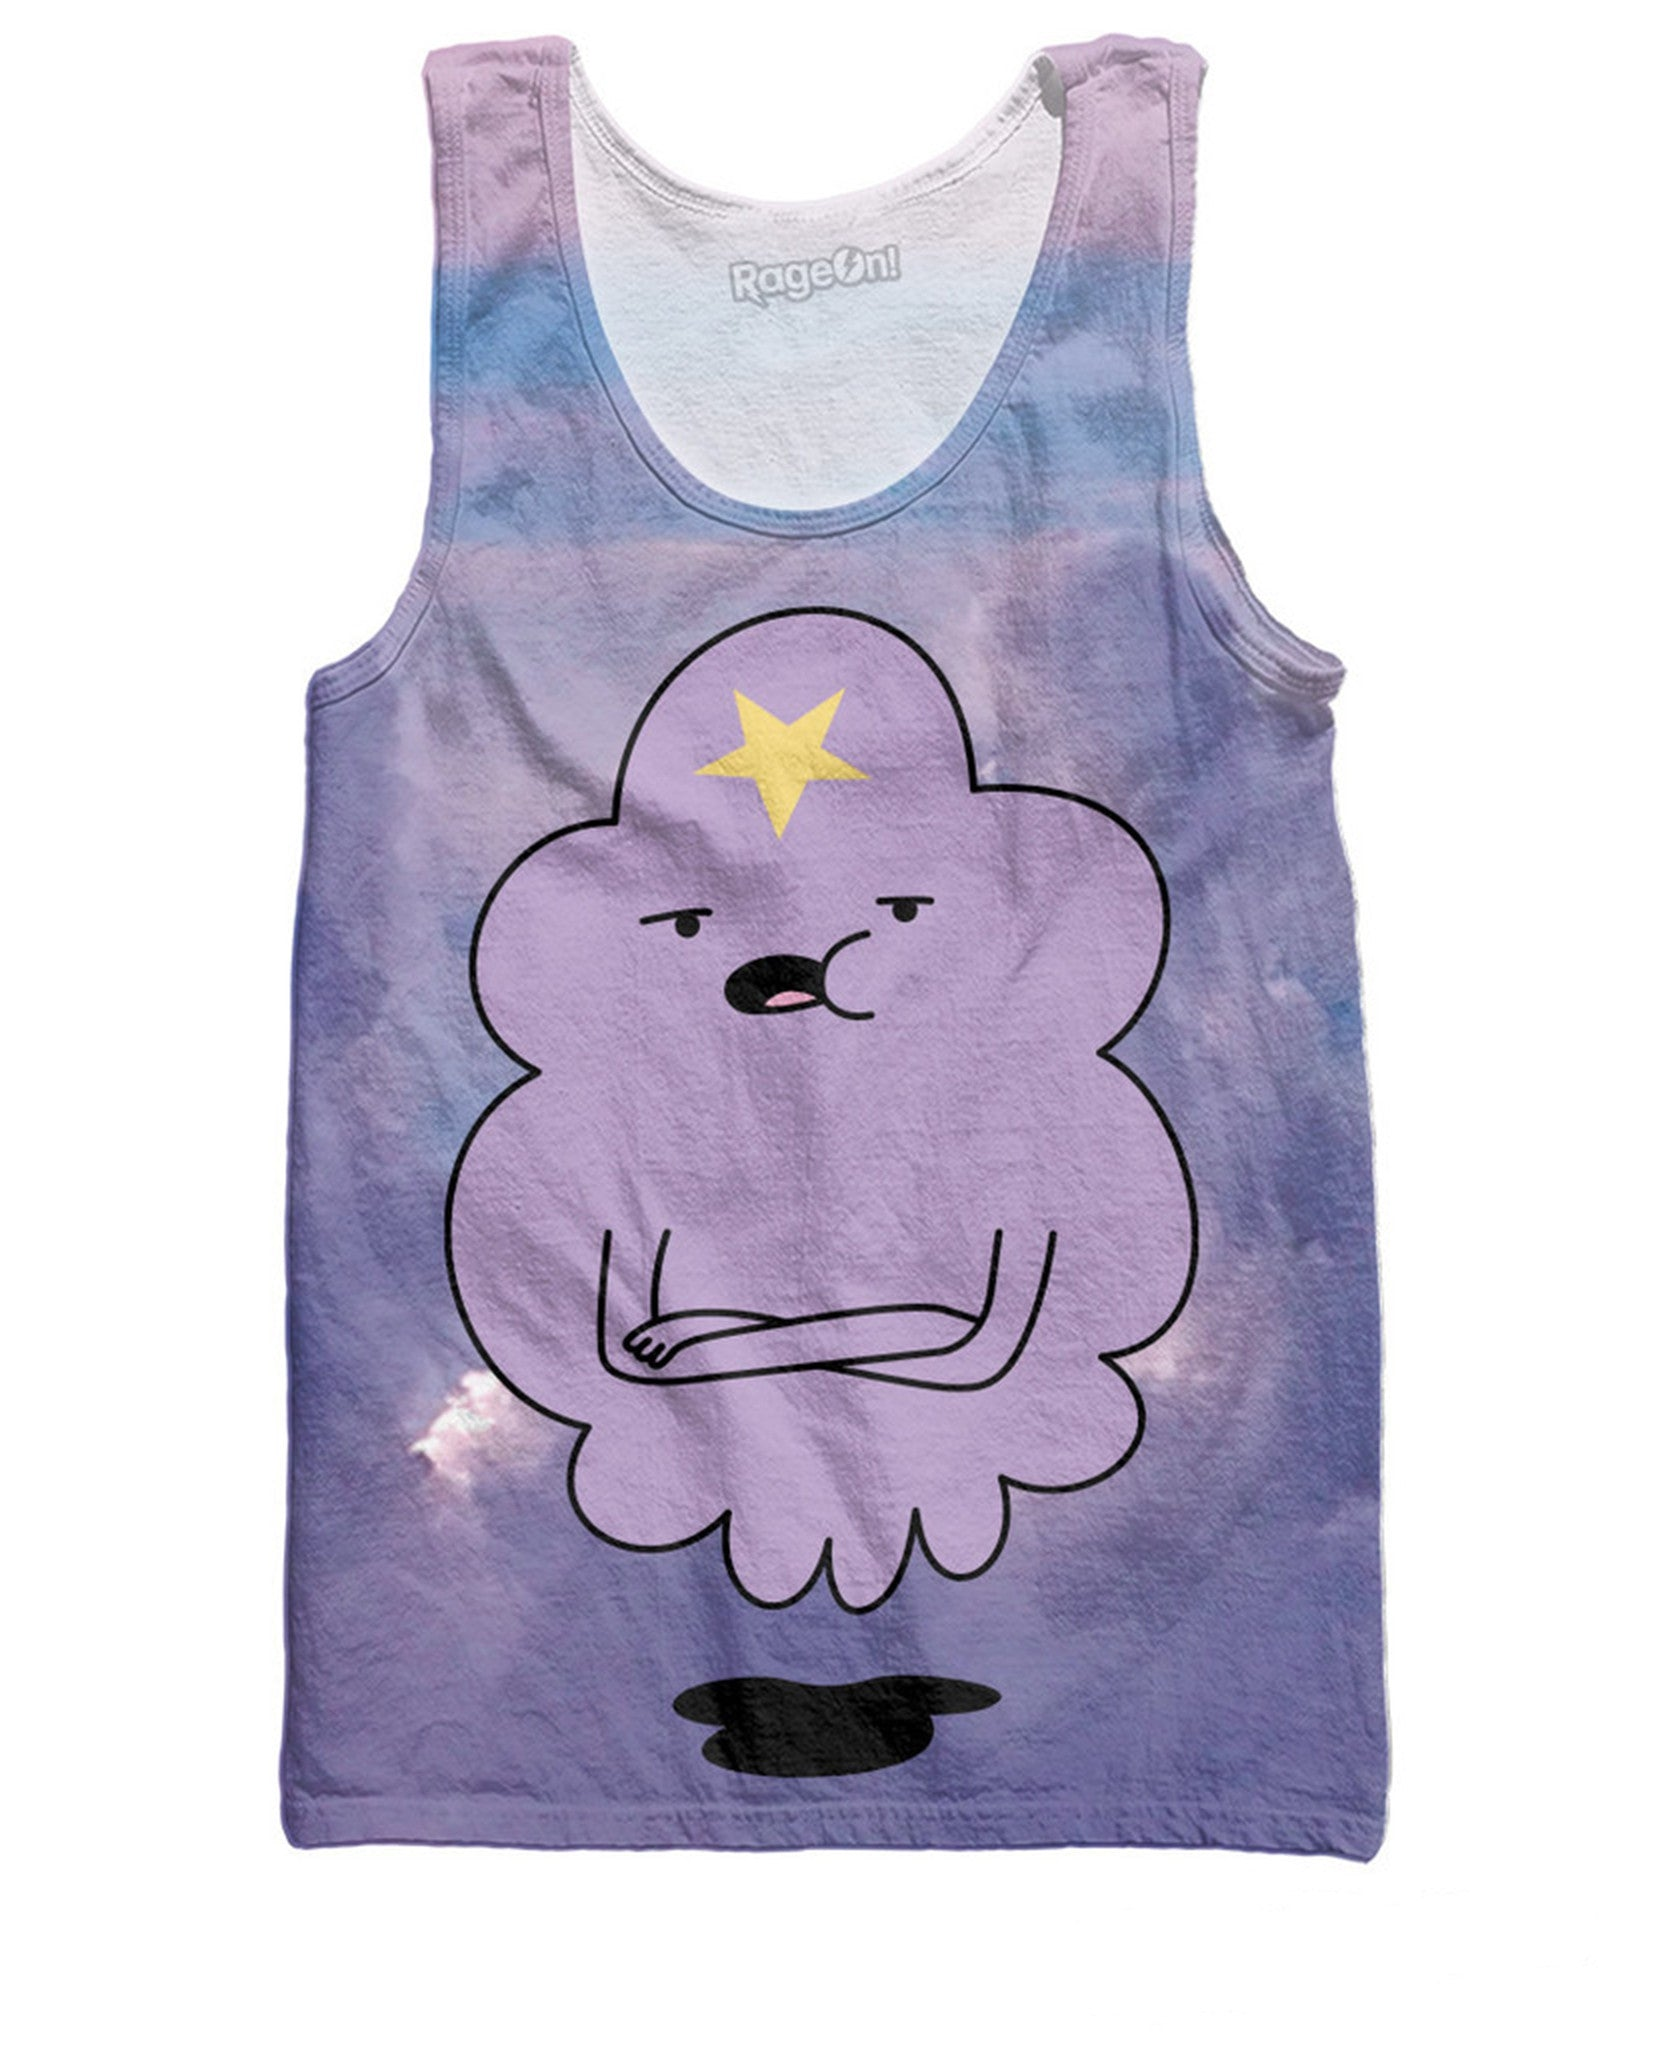 Lumpy Space Princess Tank Top